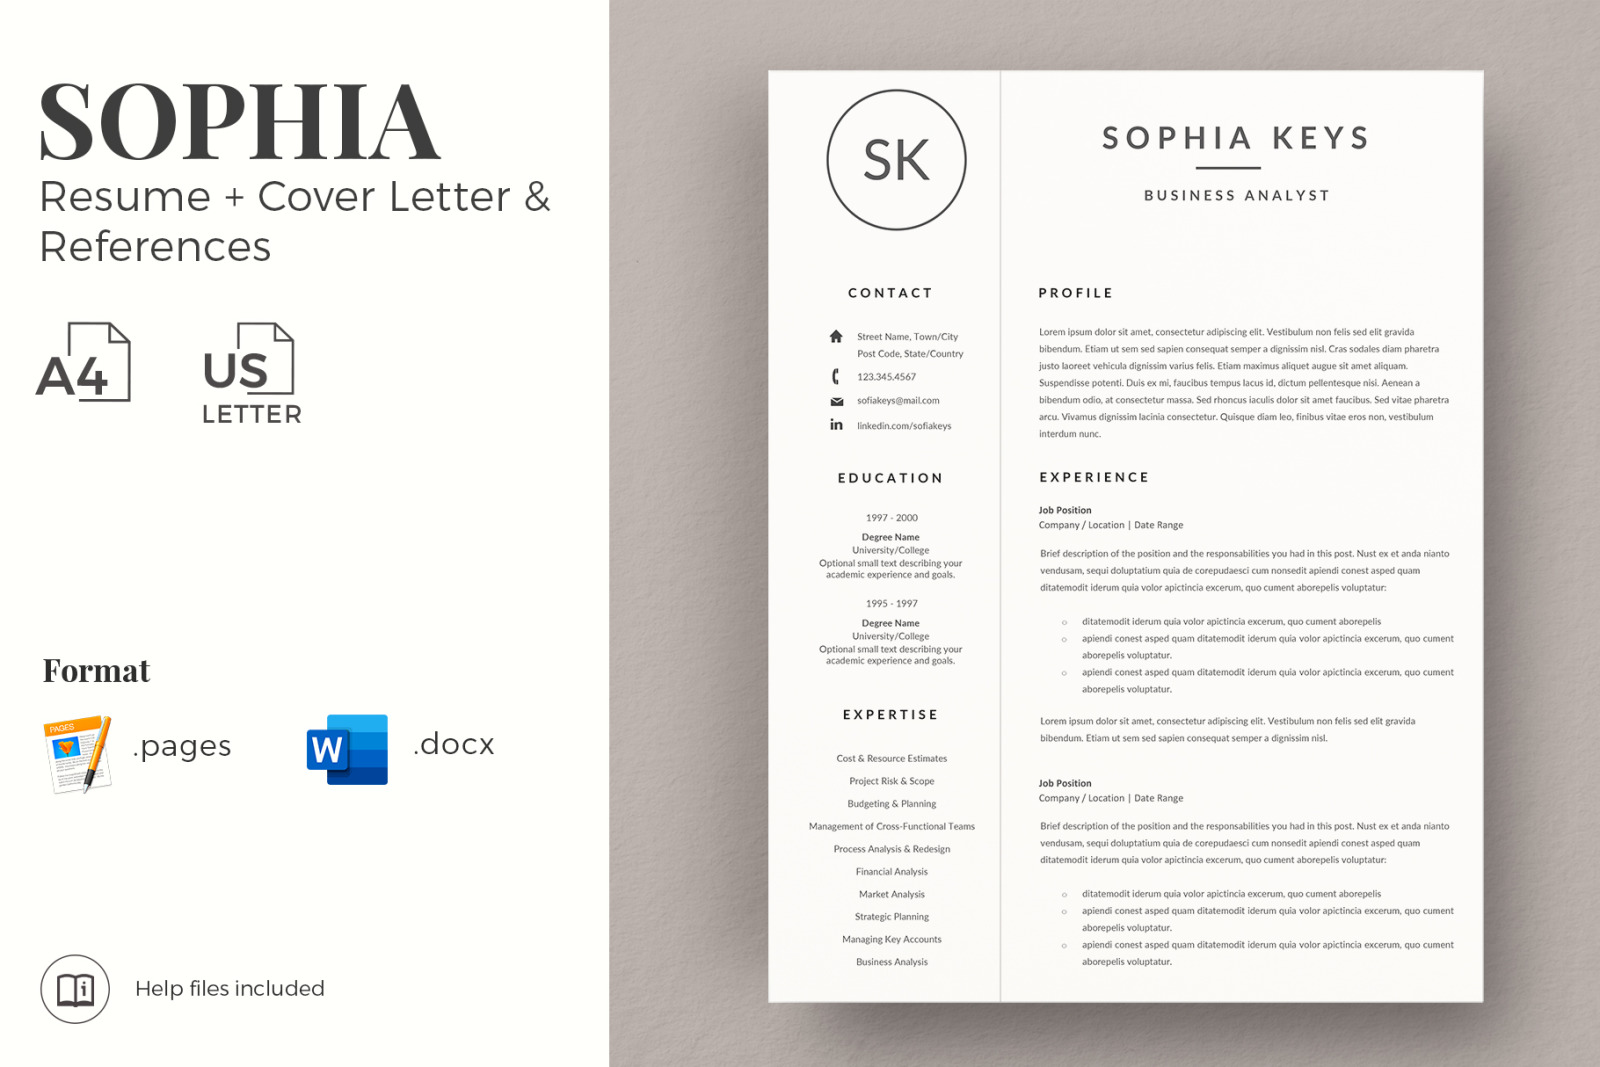 Minimalist Resume Cv Layout With Logo For Ms Word Mac Pages Cover Letter References Icon Set In Resume Templates On Yellow Images Creative Store